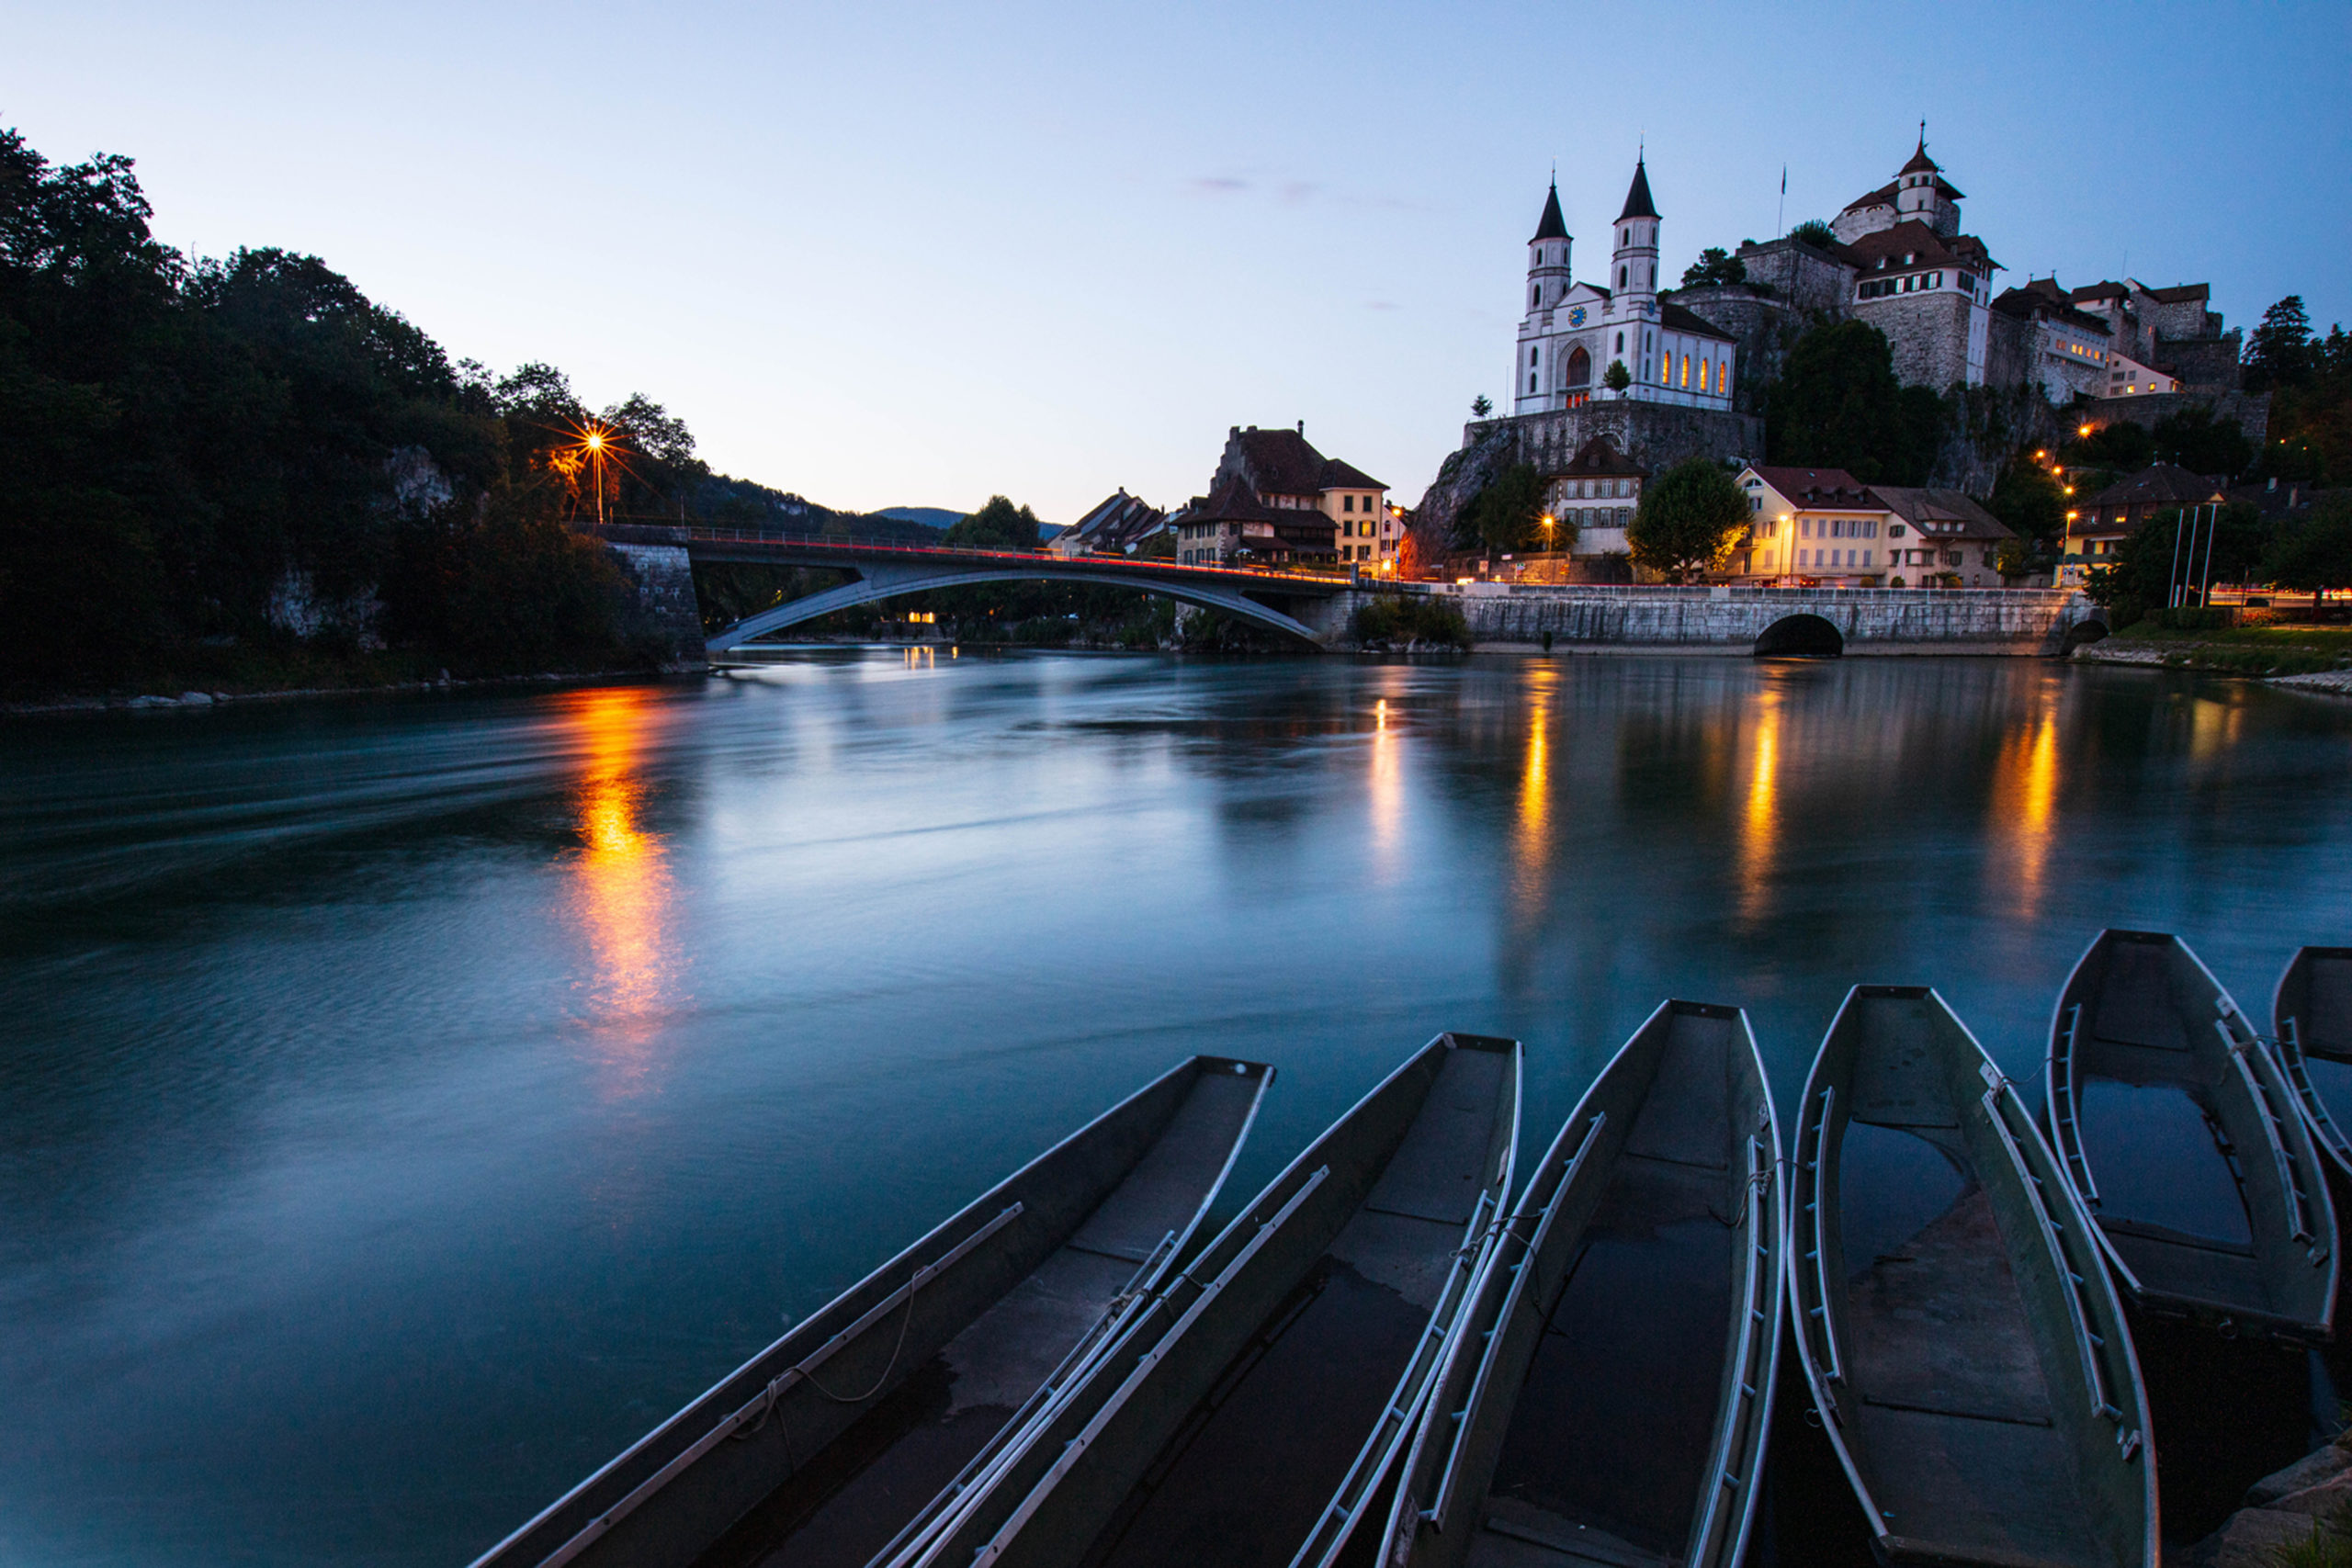 Blue hour in Aarburg